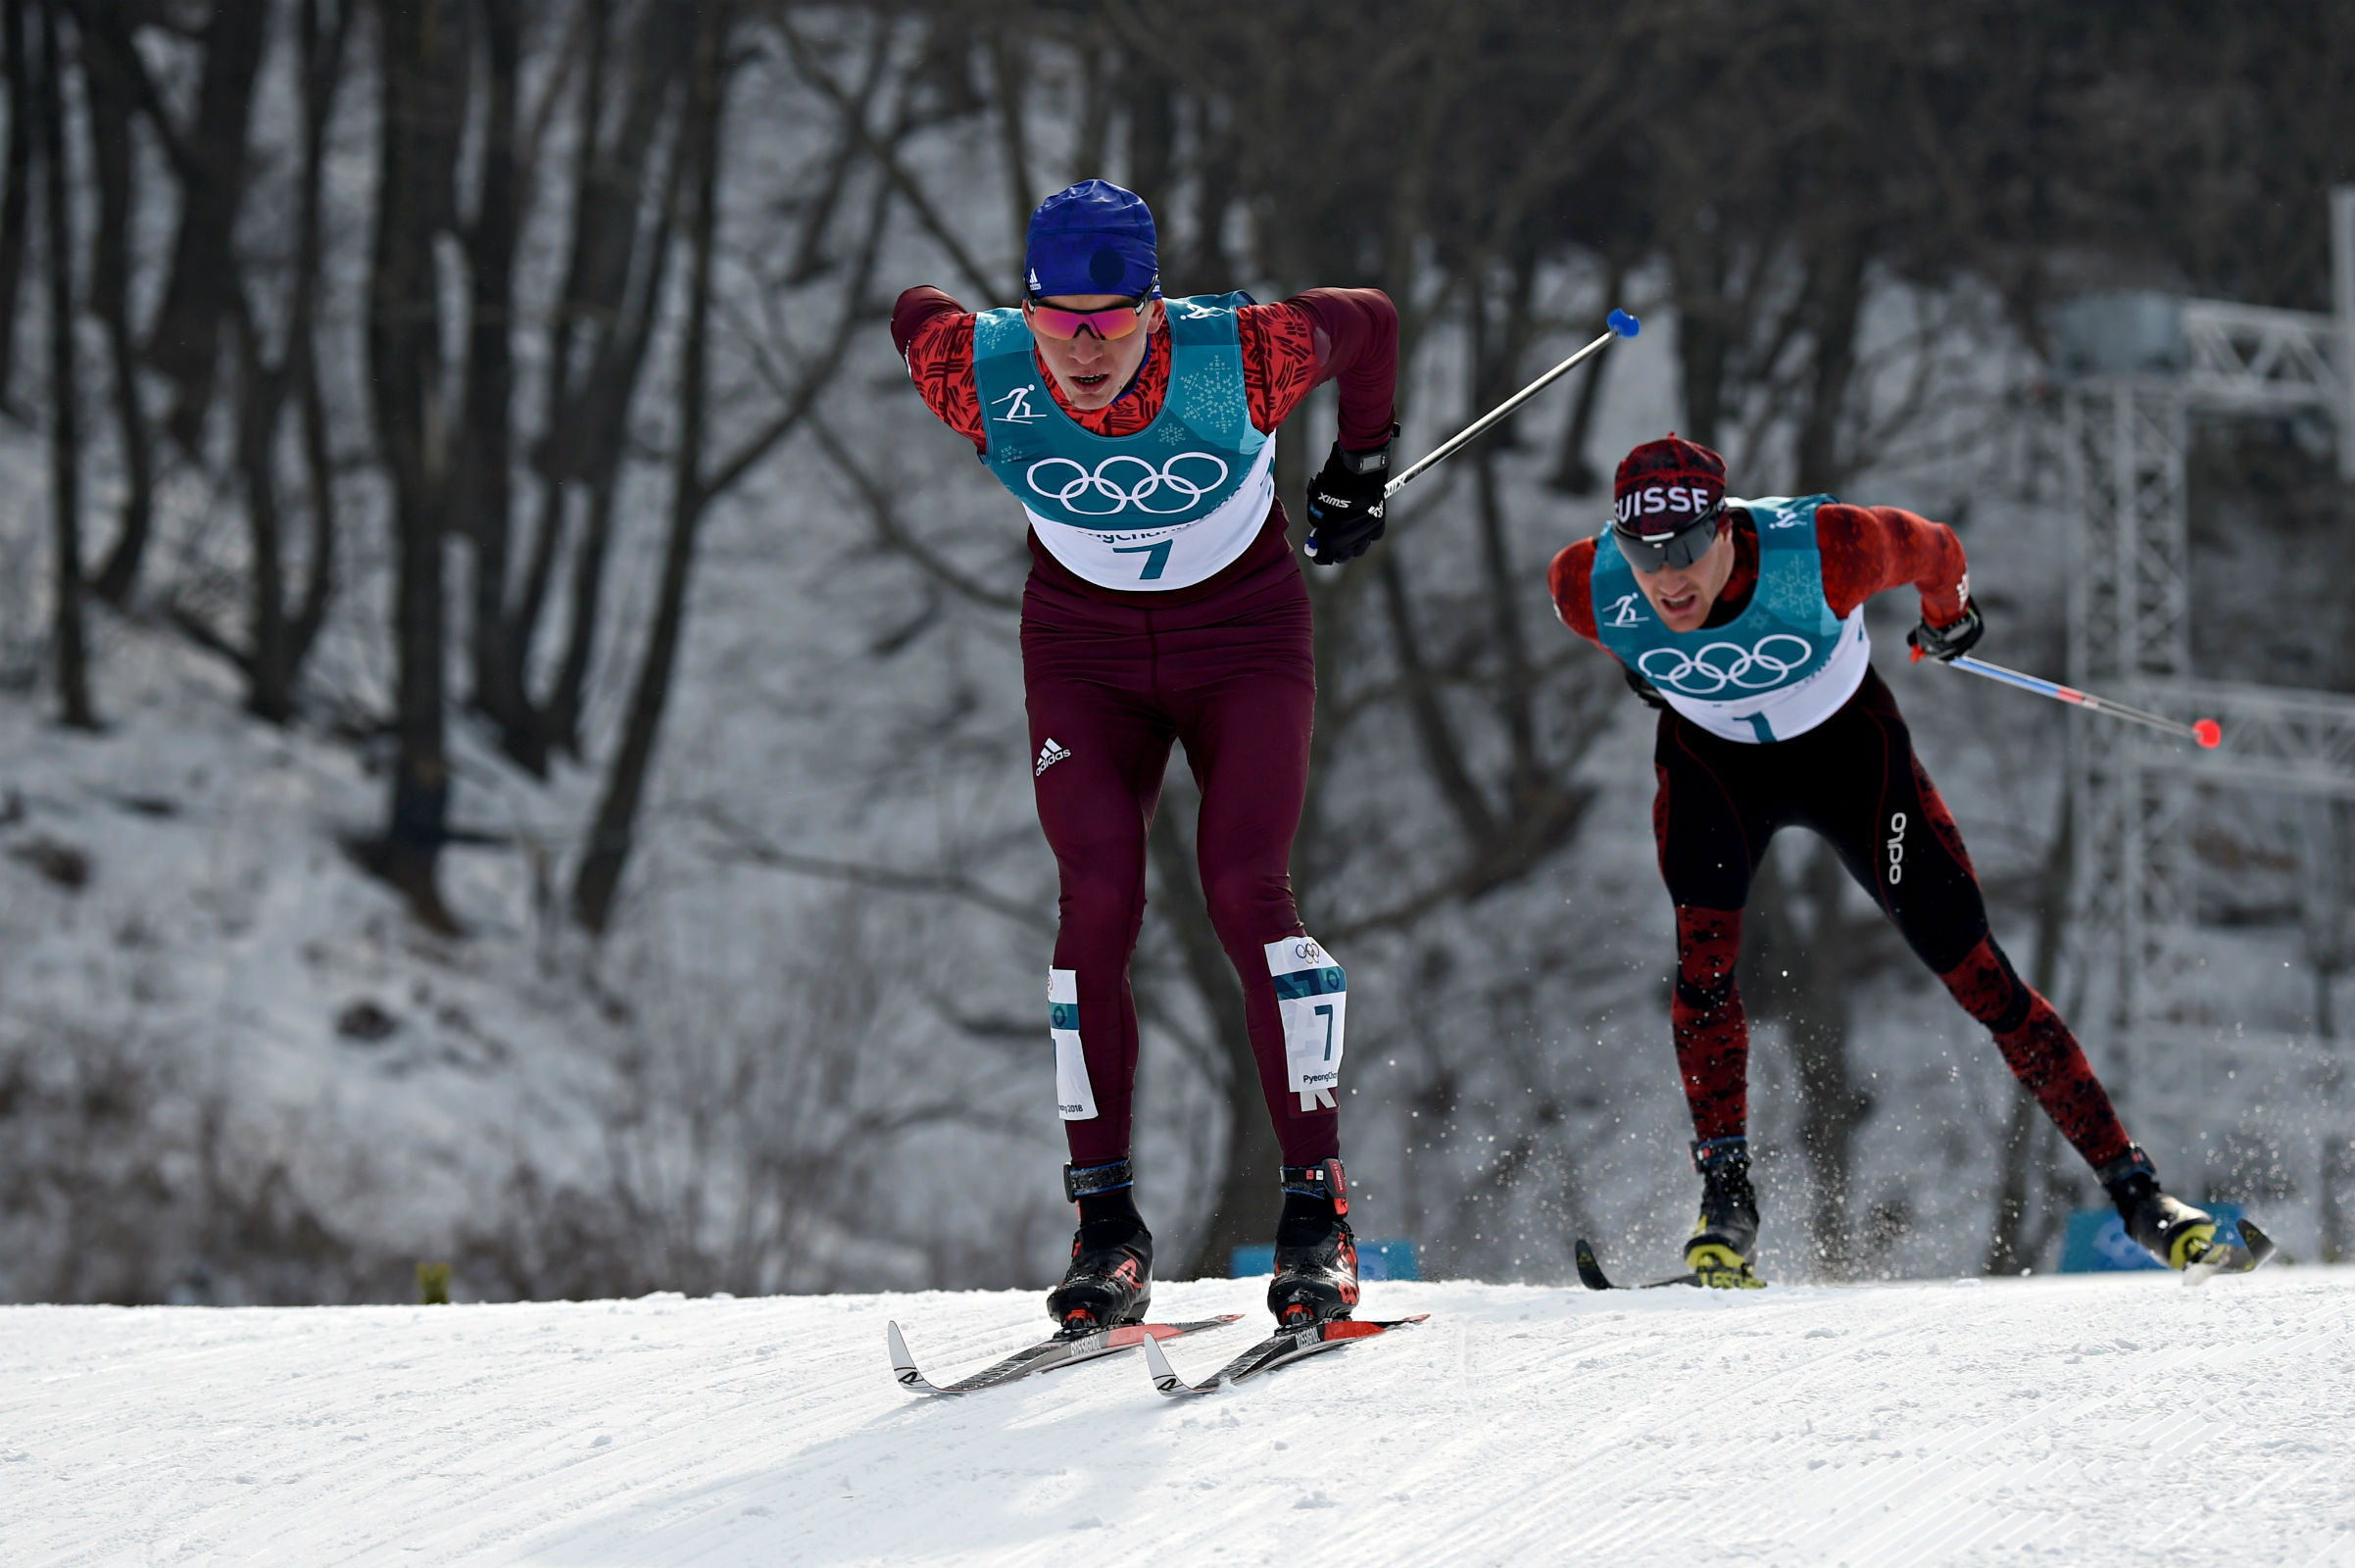 Cross-Country Skiing - Men's 50km Mass Start Classic